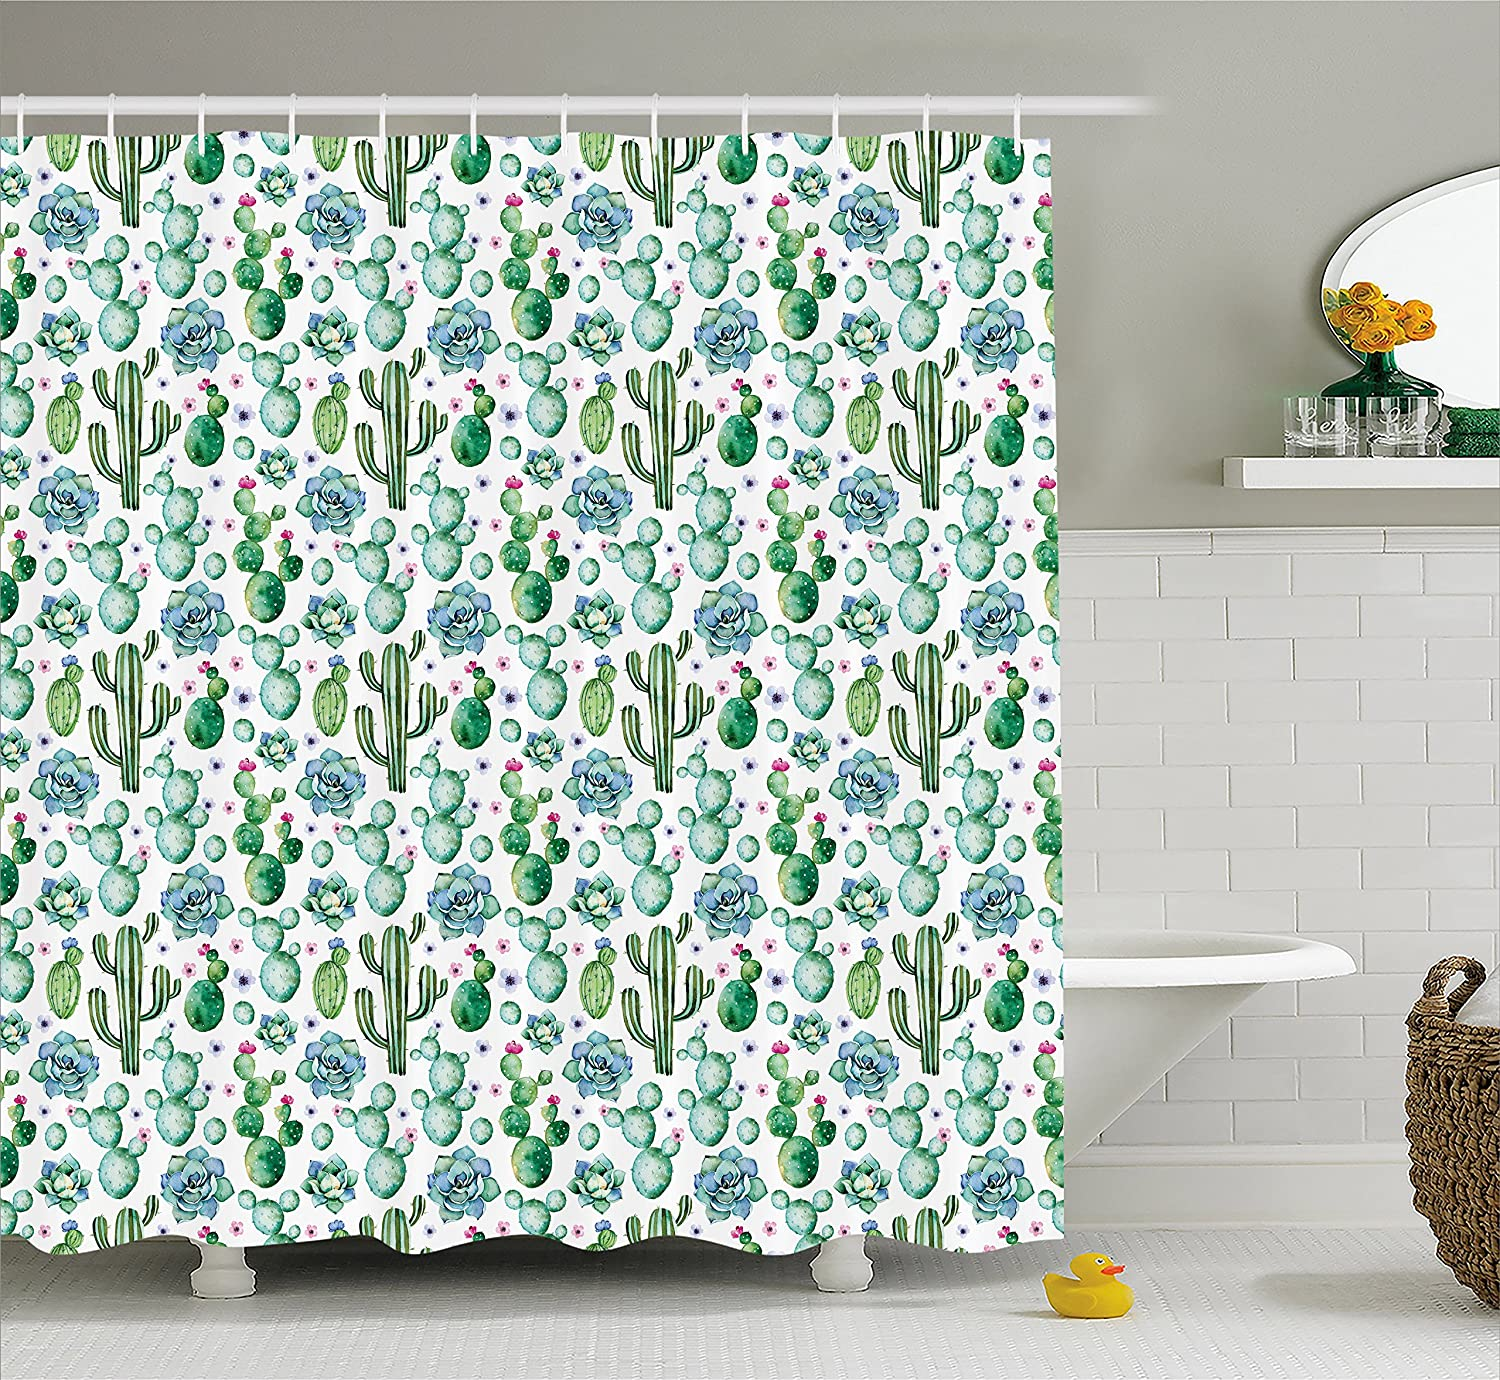 Fabric Bathroom Decor Set with Hooks Coral Green Ambesonne Coral Shower Curtain 70 inches Blossoming Tree Branch Japanese Cherry Sakura Fresh Spring Garden Romantic